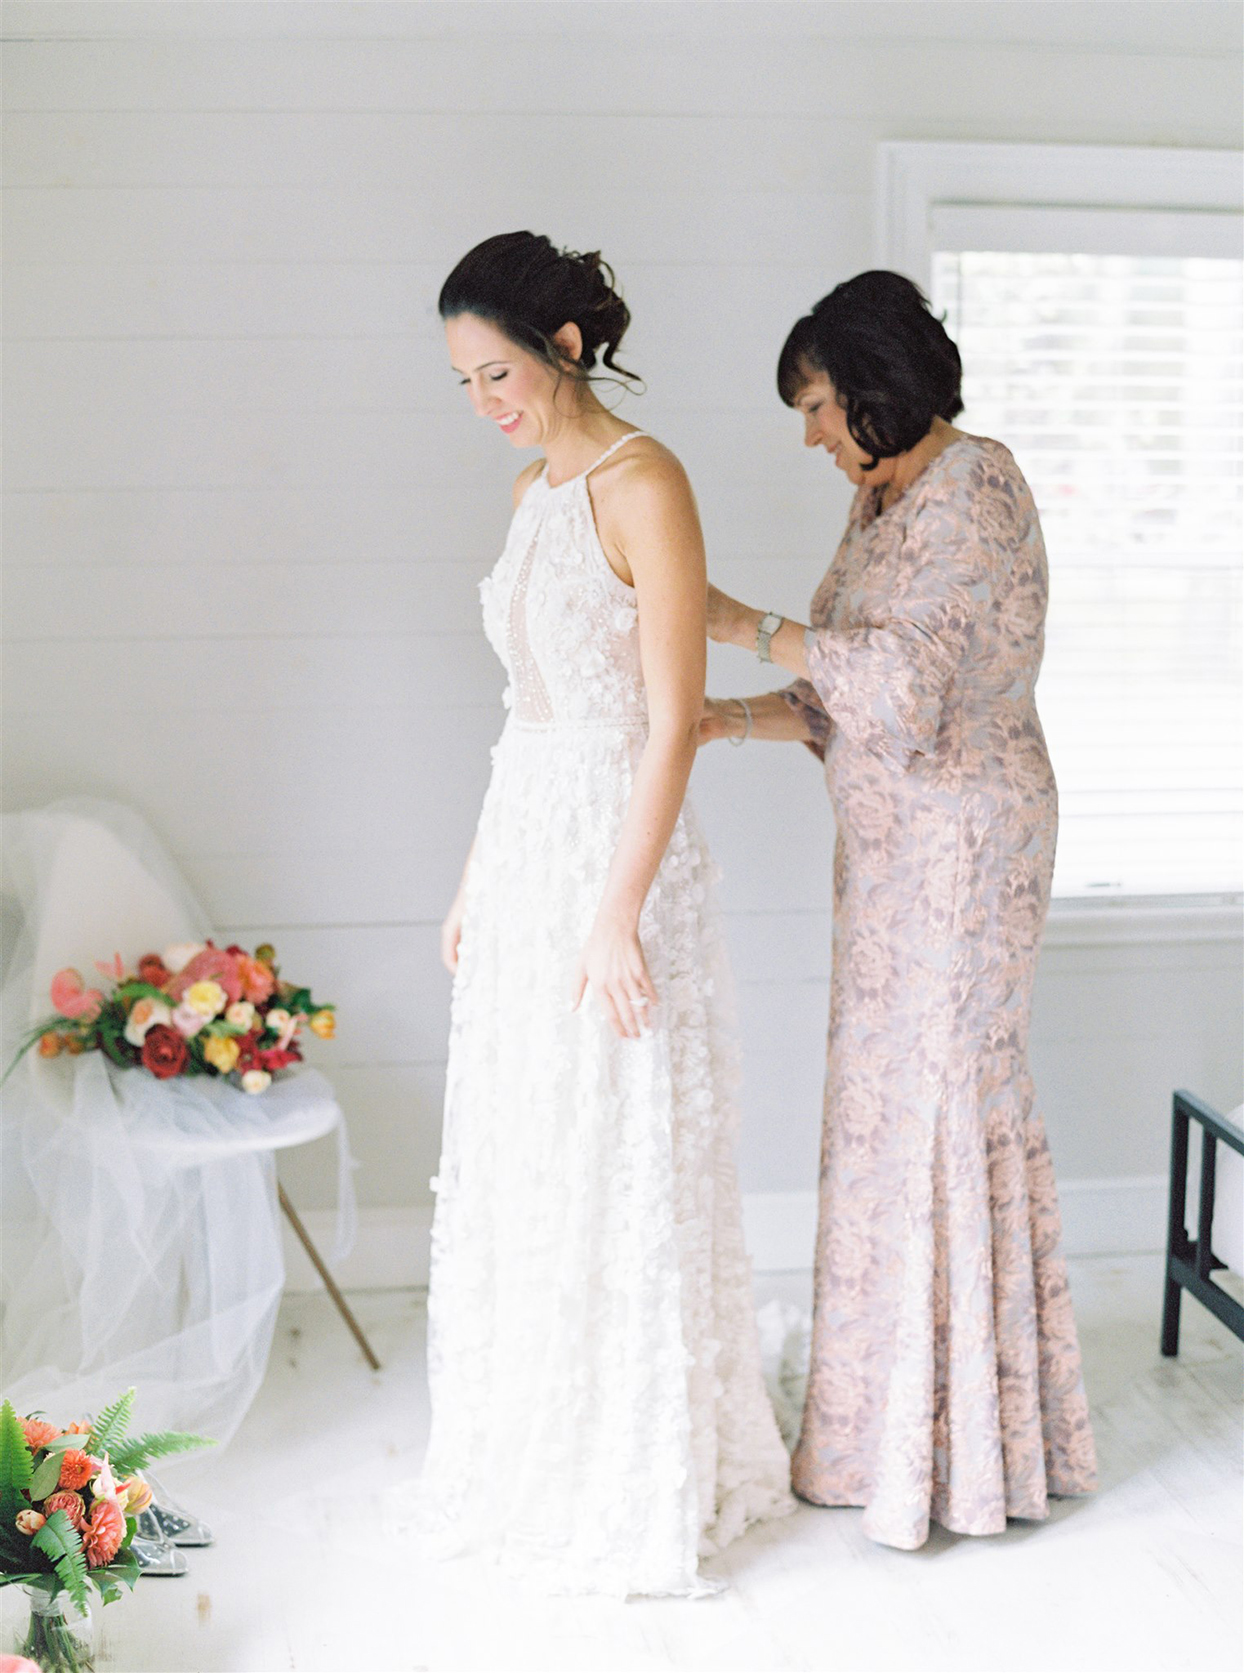 bride getting ready with help of mother in pastel pink dress